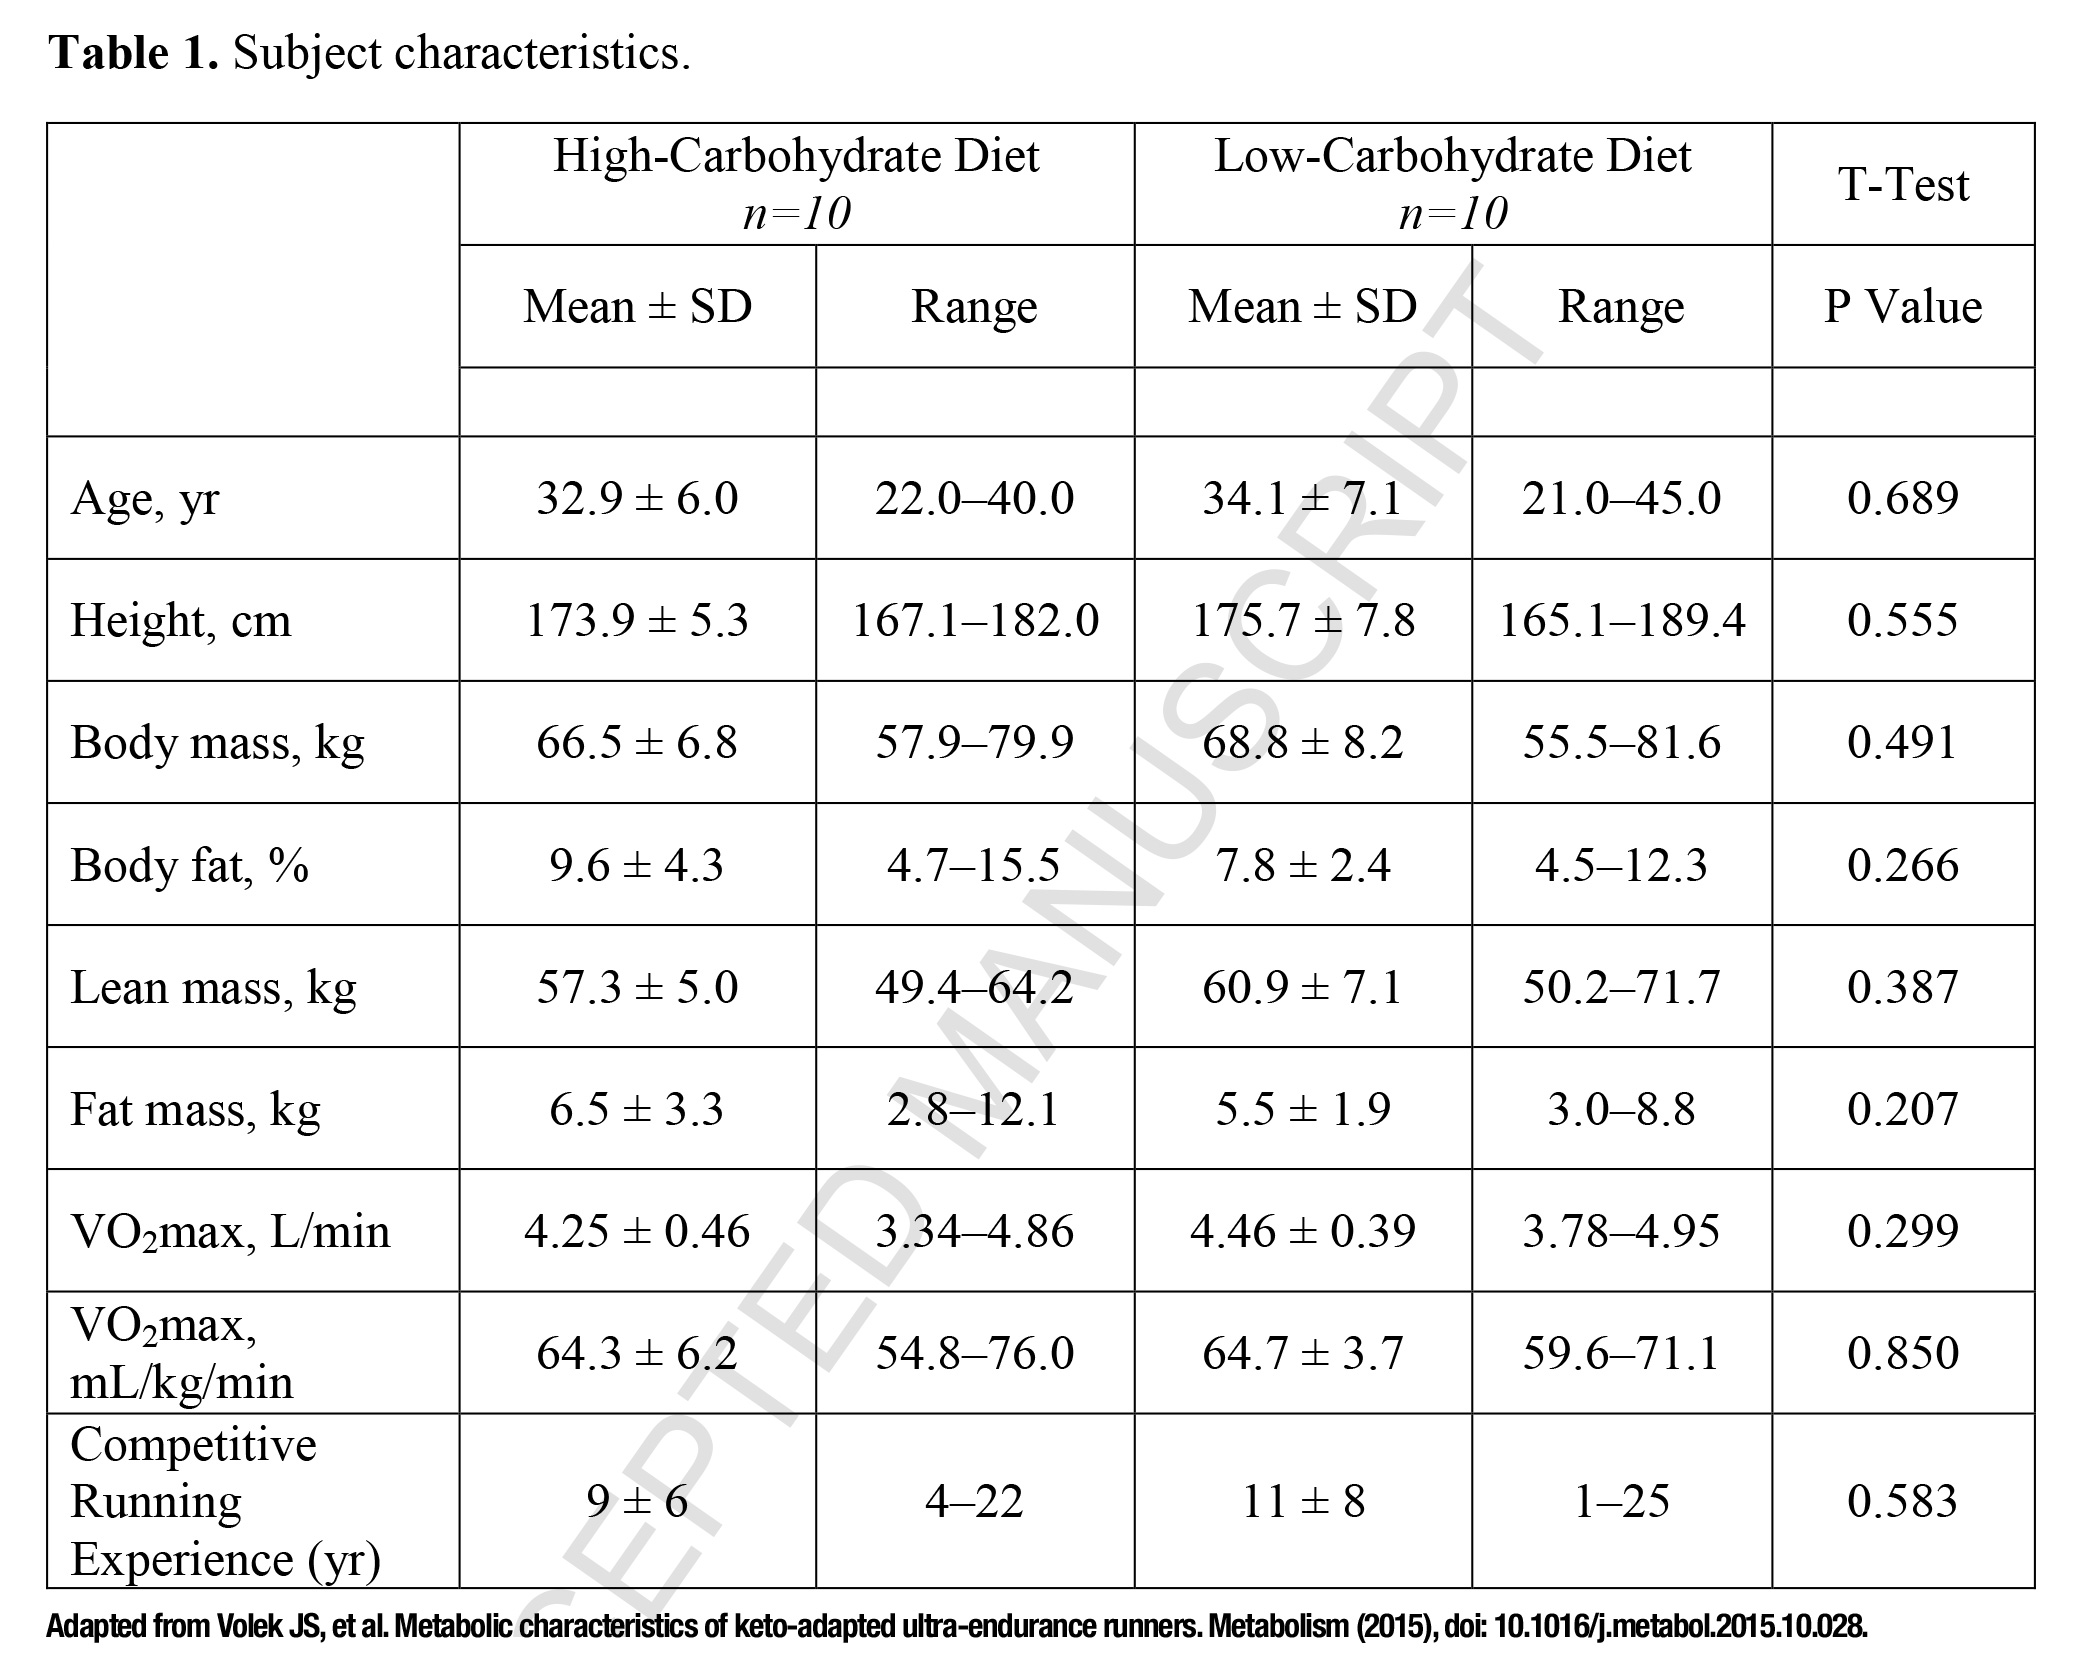 Subject_characteristics_of_high_carb_vs_low_carb_runners